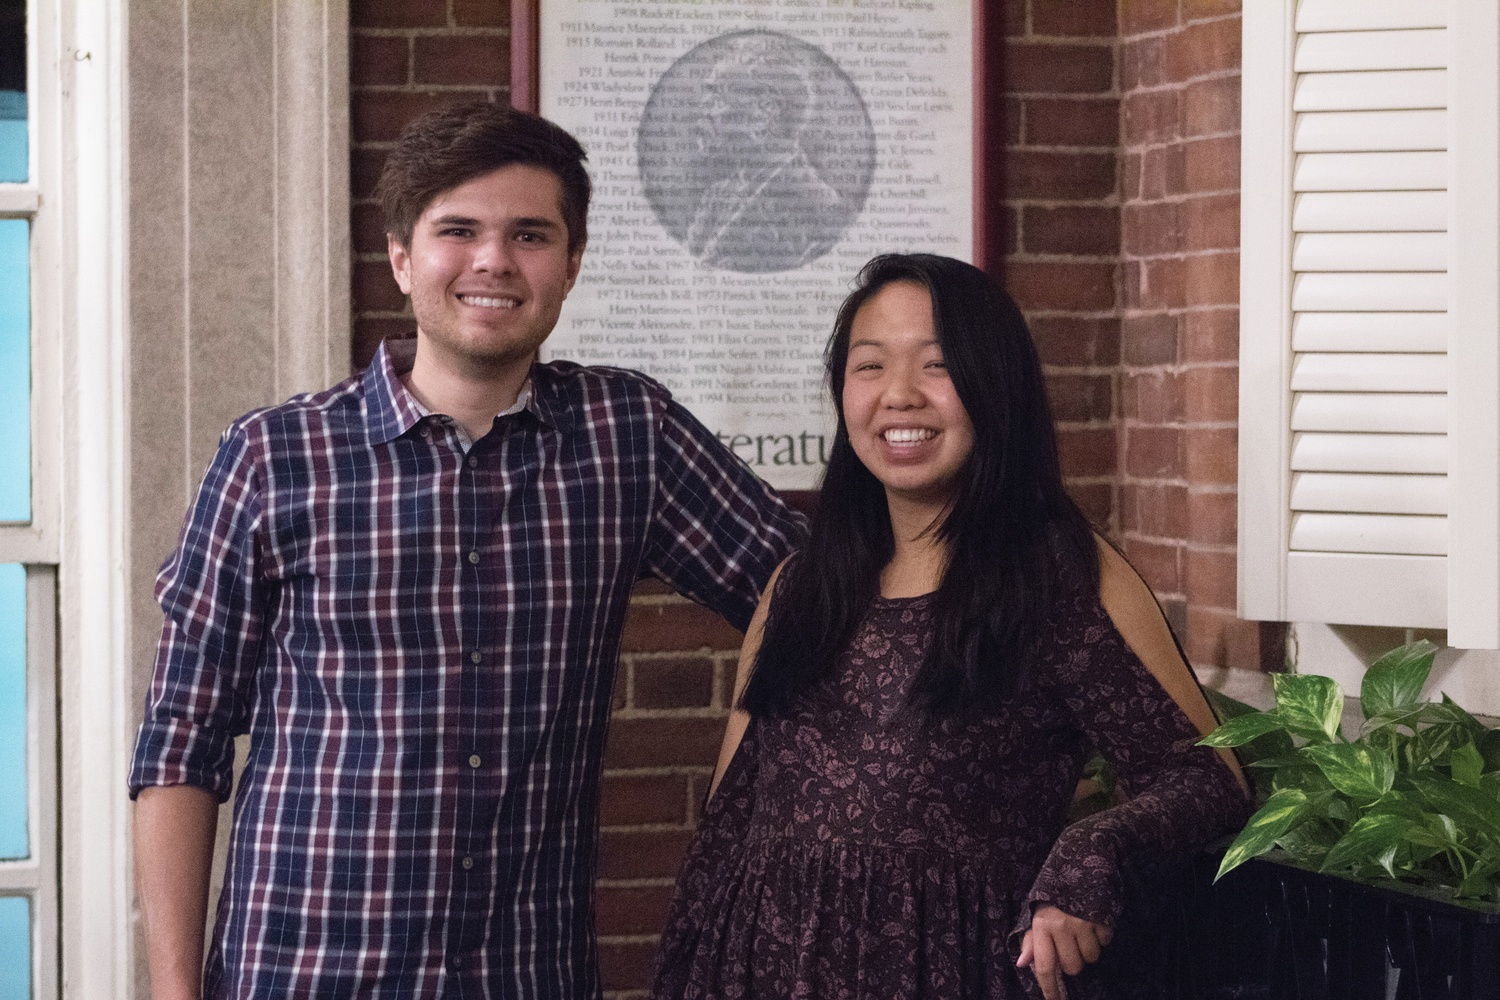 Catherine L. Zhang '19, right, and Nicholas D. Boucher '19, left, pose for a photo Thursday evening in Adams House Conservatory. Zhang and Boucher are running for president and vice president, respectively, of the Undergraduate Council.